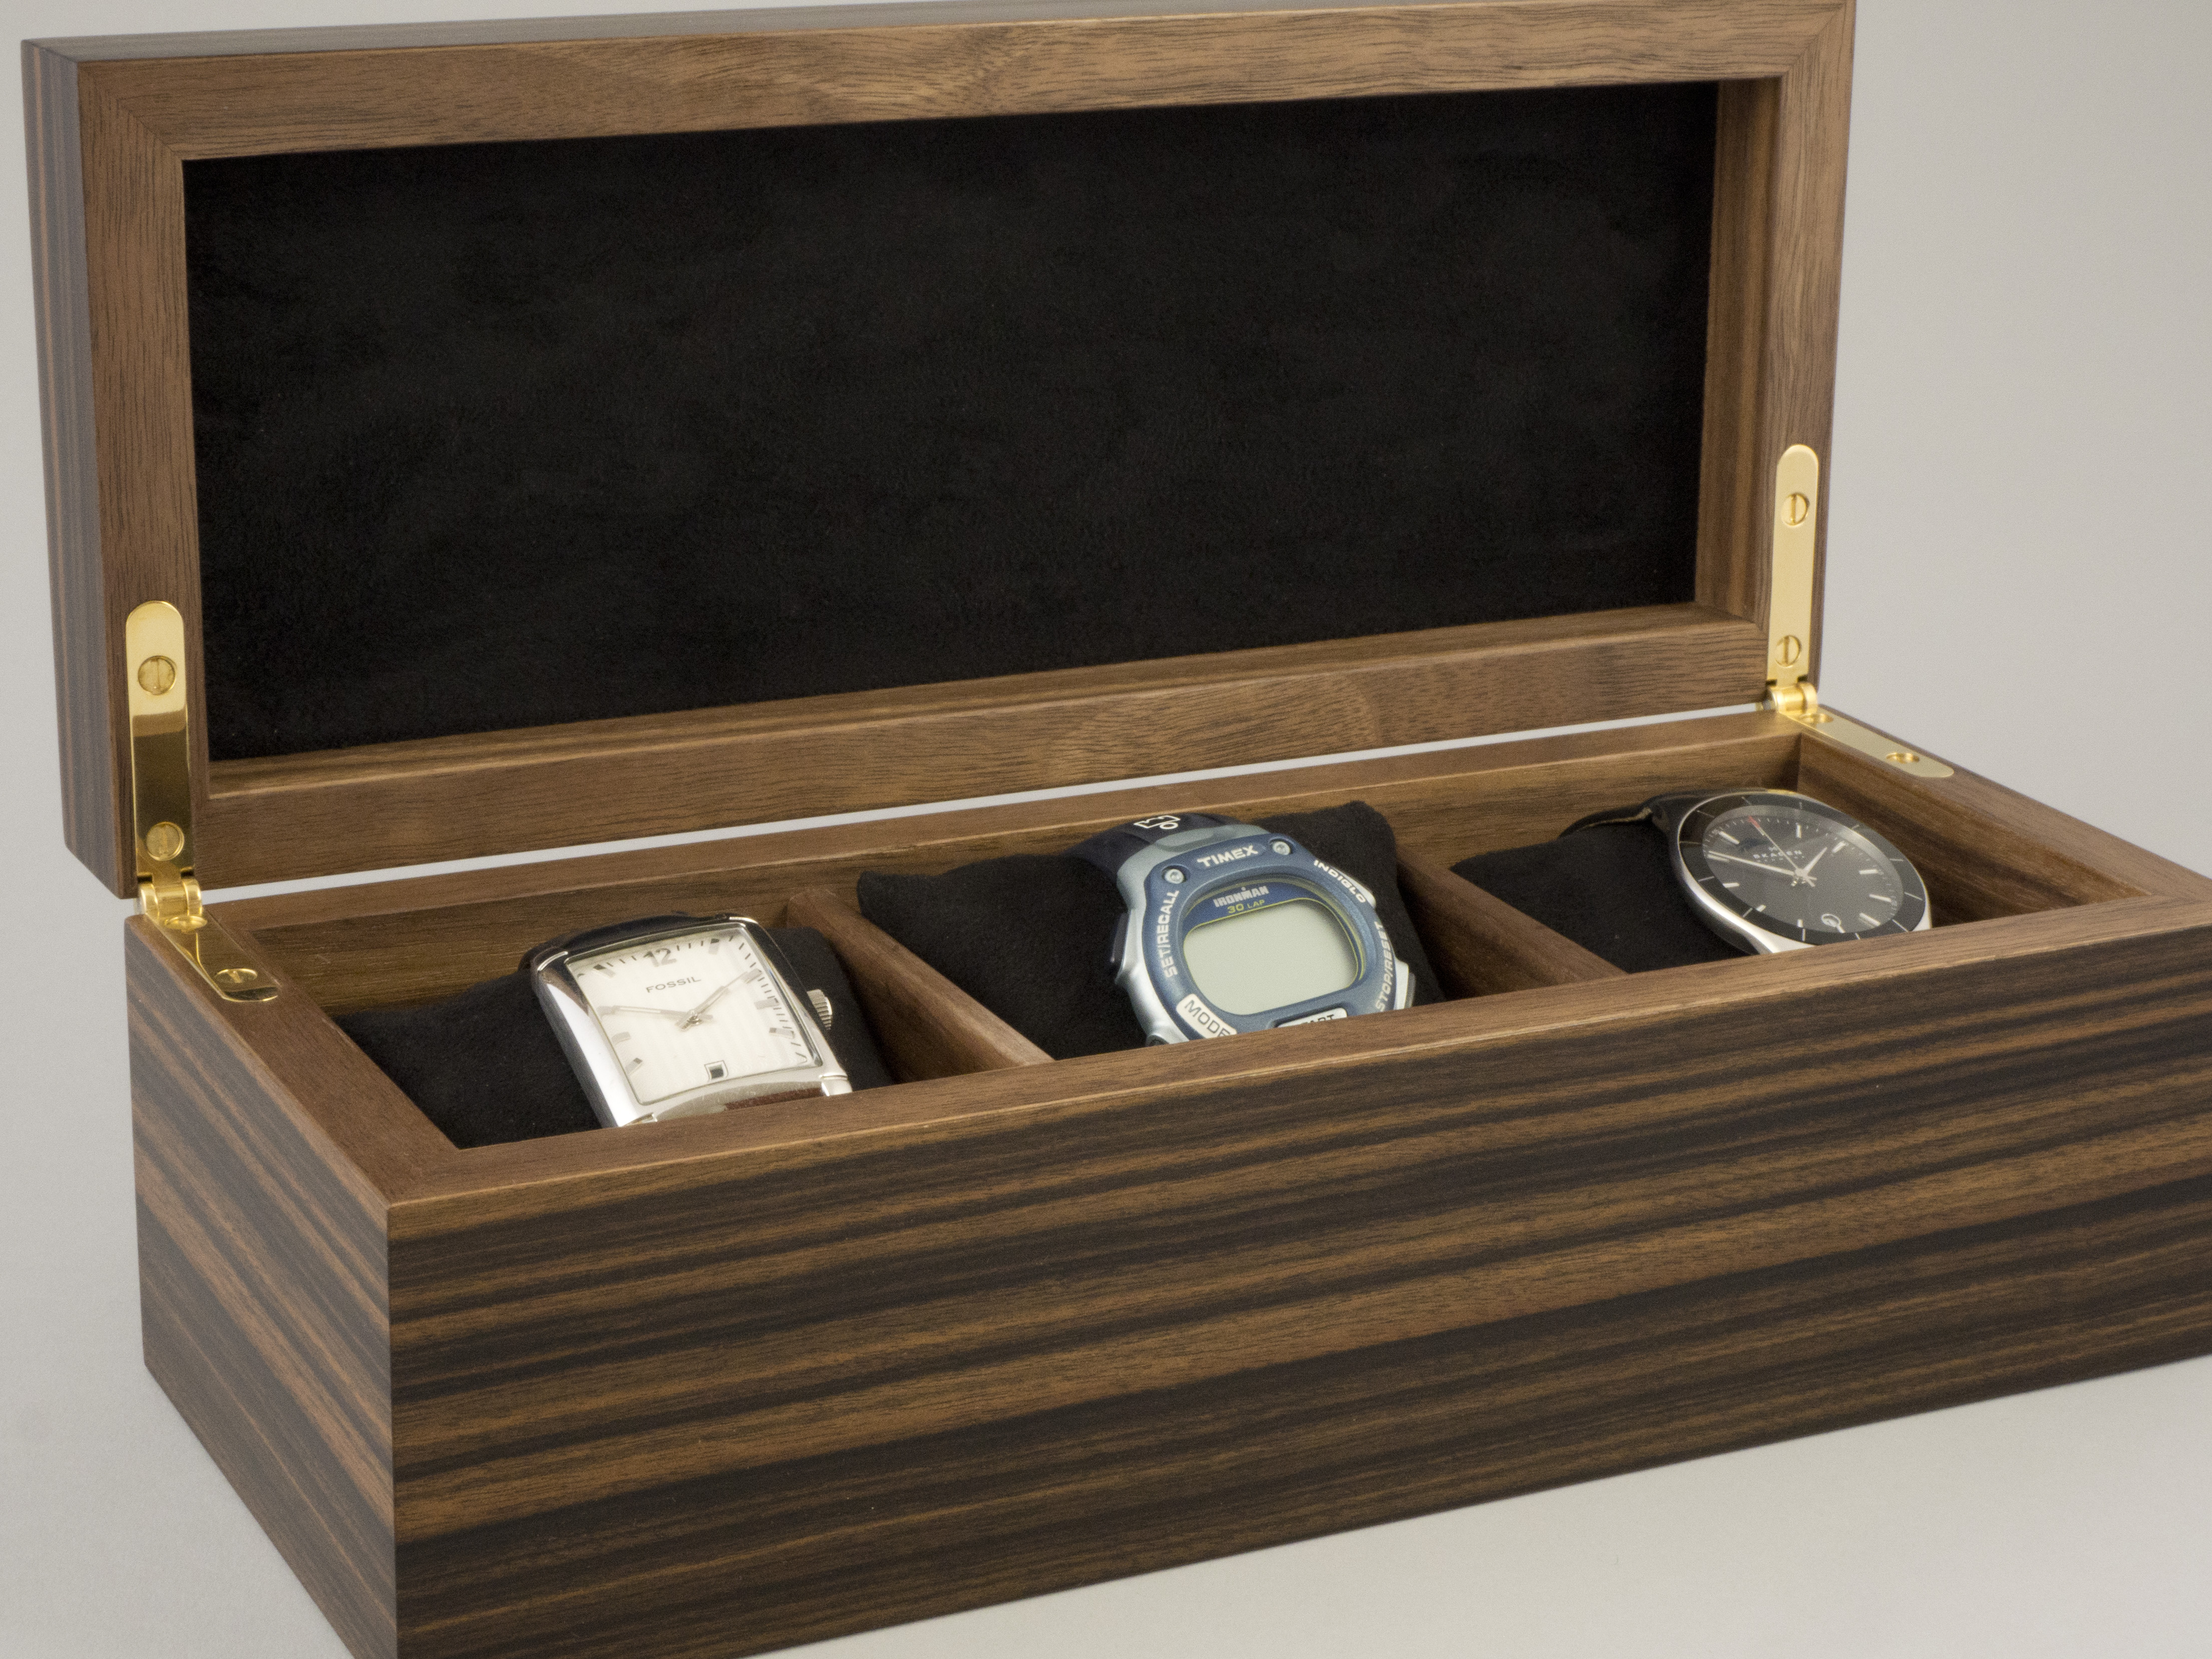 Watches in the box